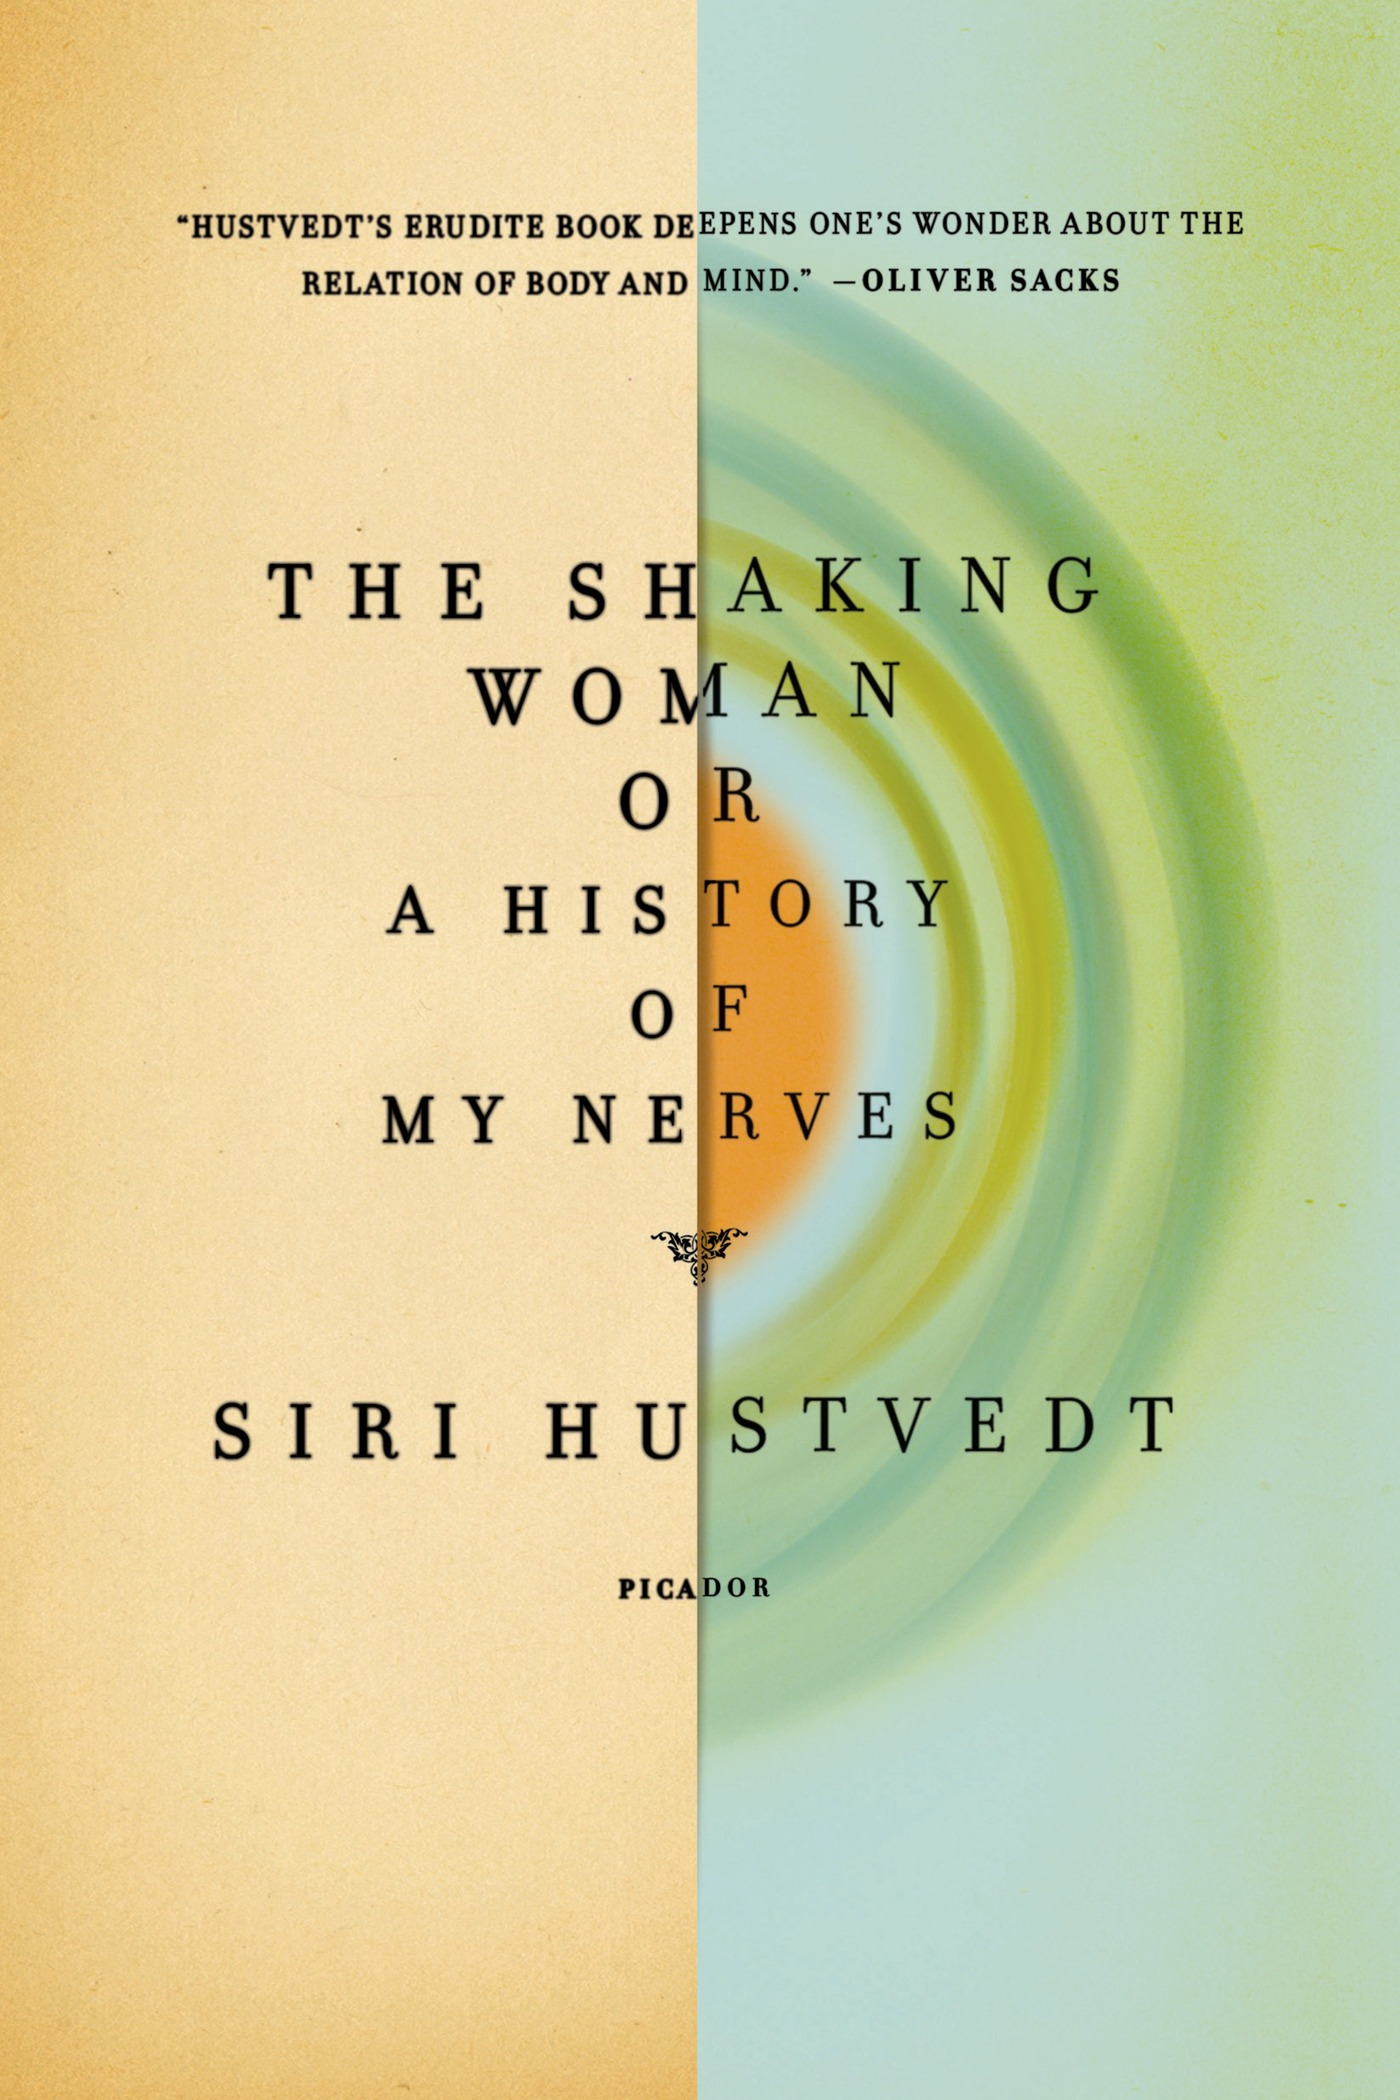 The Shaking Woman or A History of My Nerves By: Siri Hustvedt